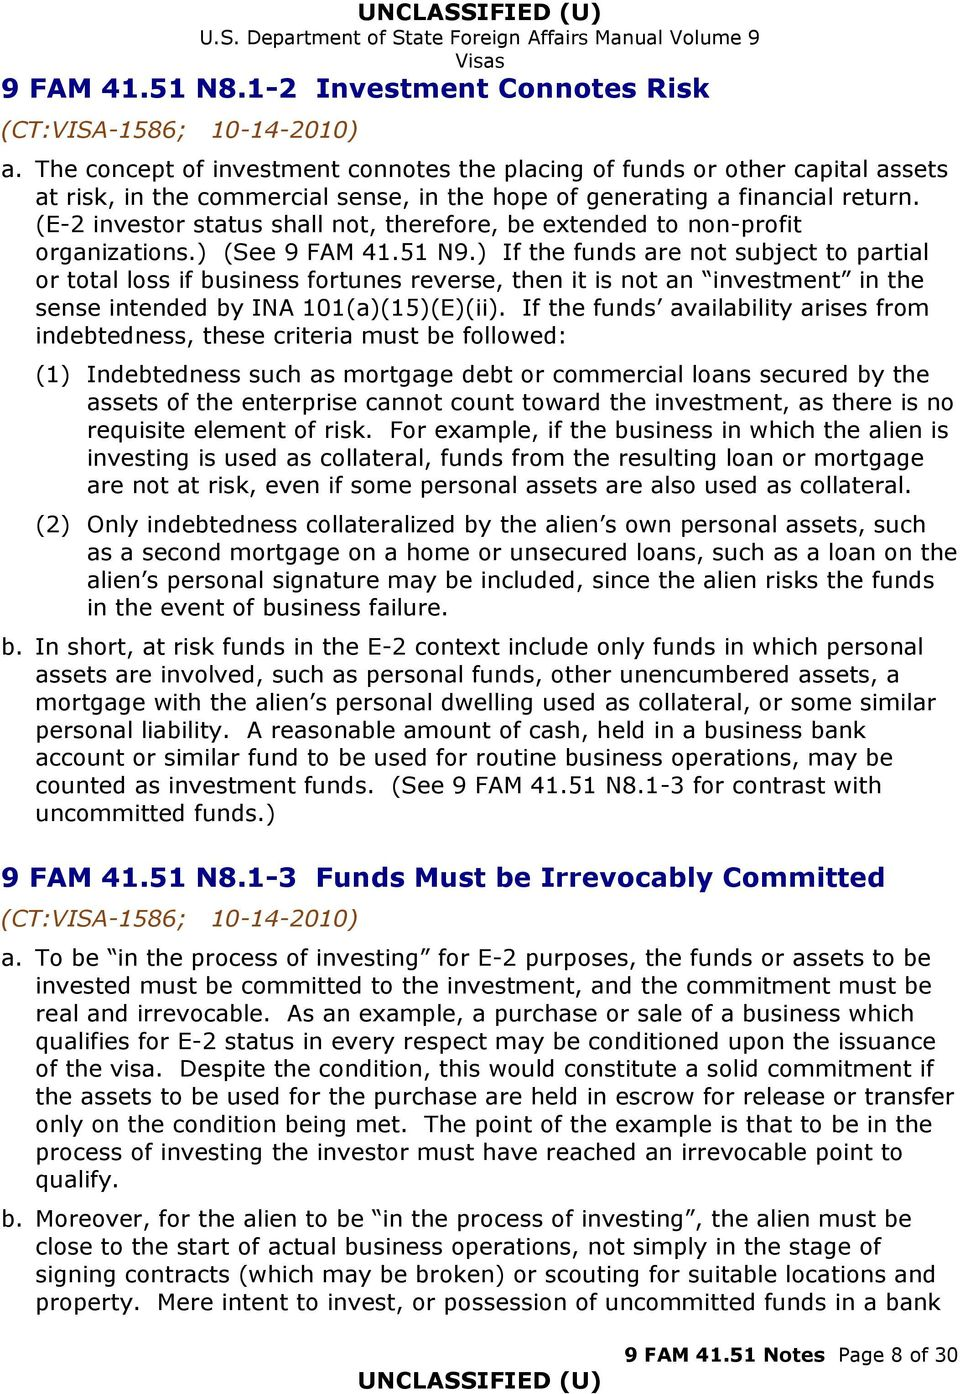 (E-2 investor status shall not, therefore, be extended to non-profit organizations.) (See 9 FAM 41.51 N9.